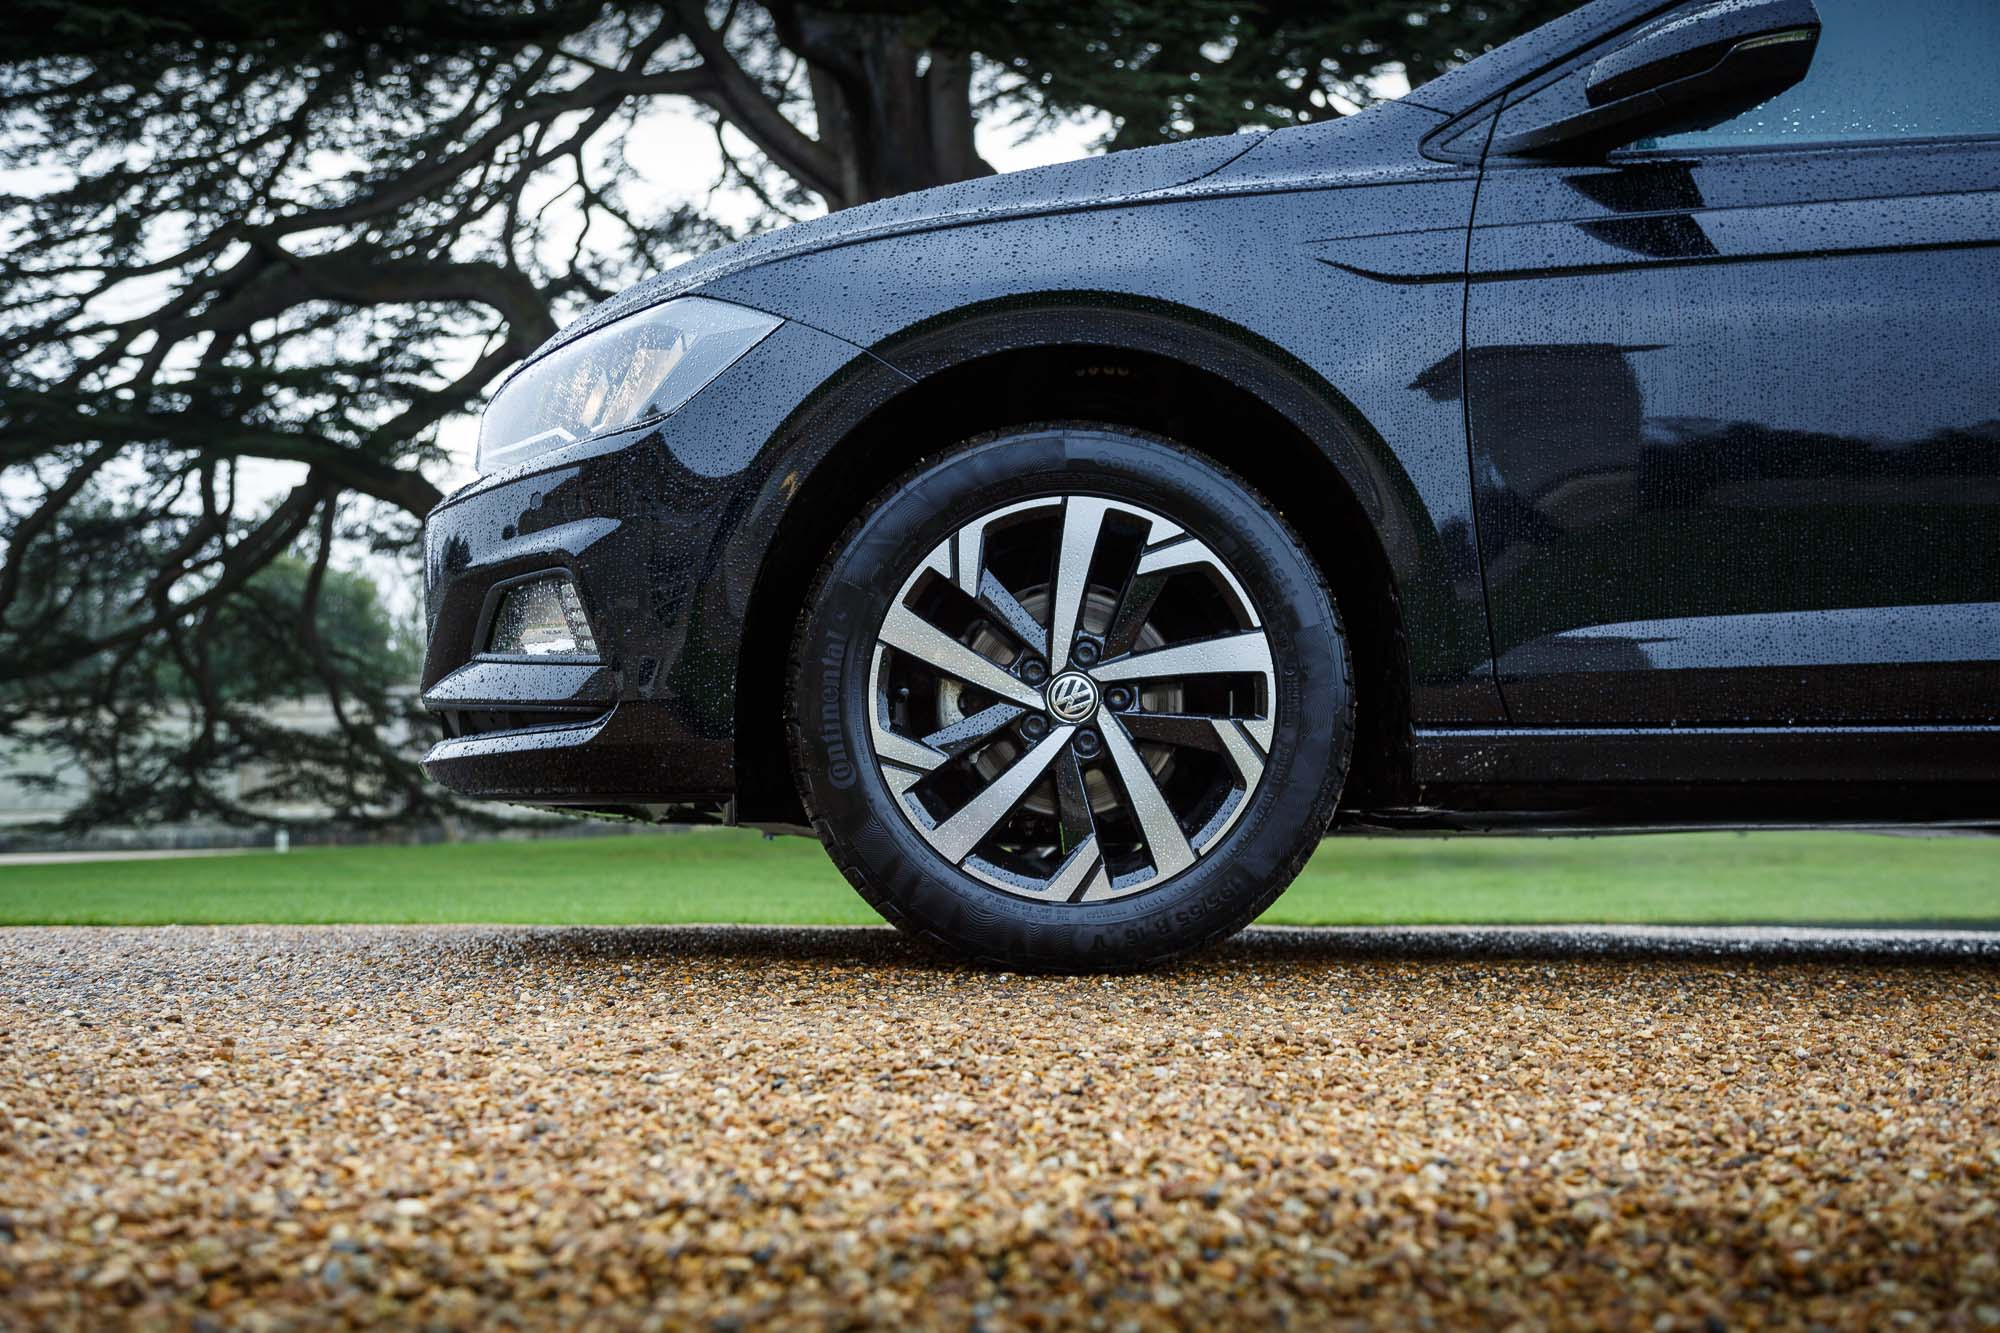 Volkswagen Polo Beats Review - (Does It Live Up To The Beats